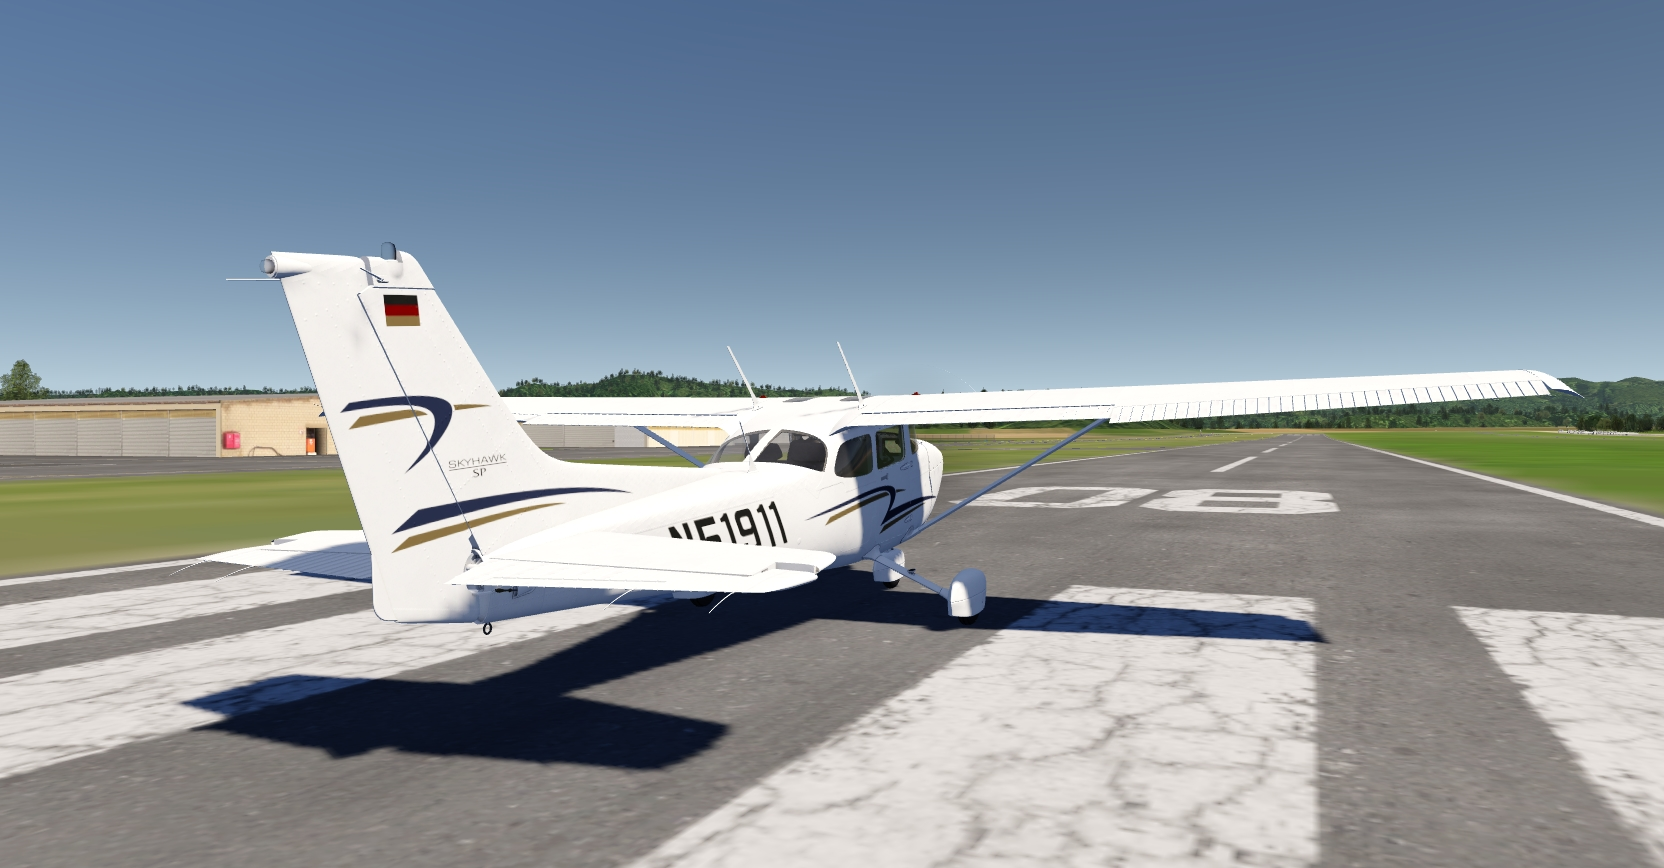 Cessna 172 ready for take off - Original Screenshot